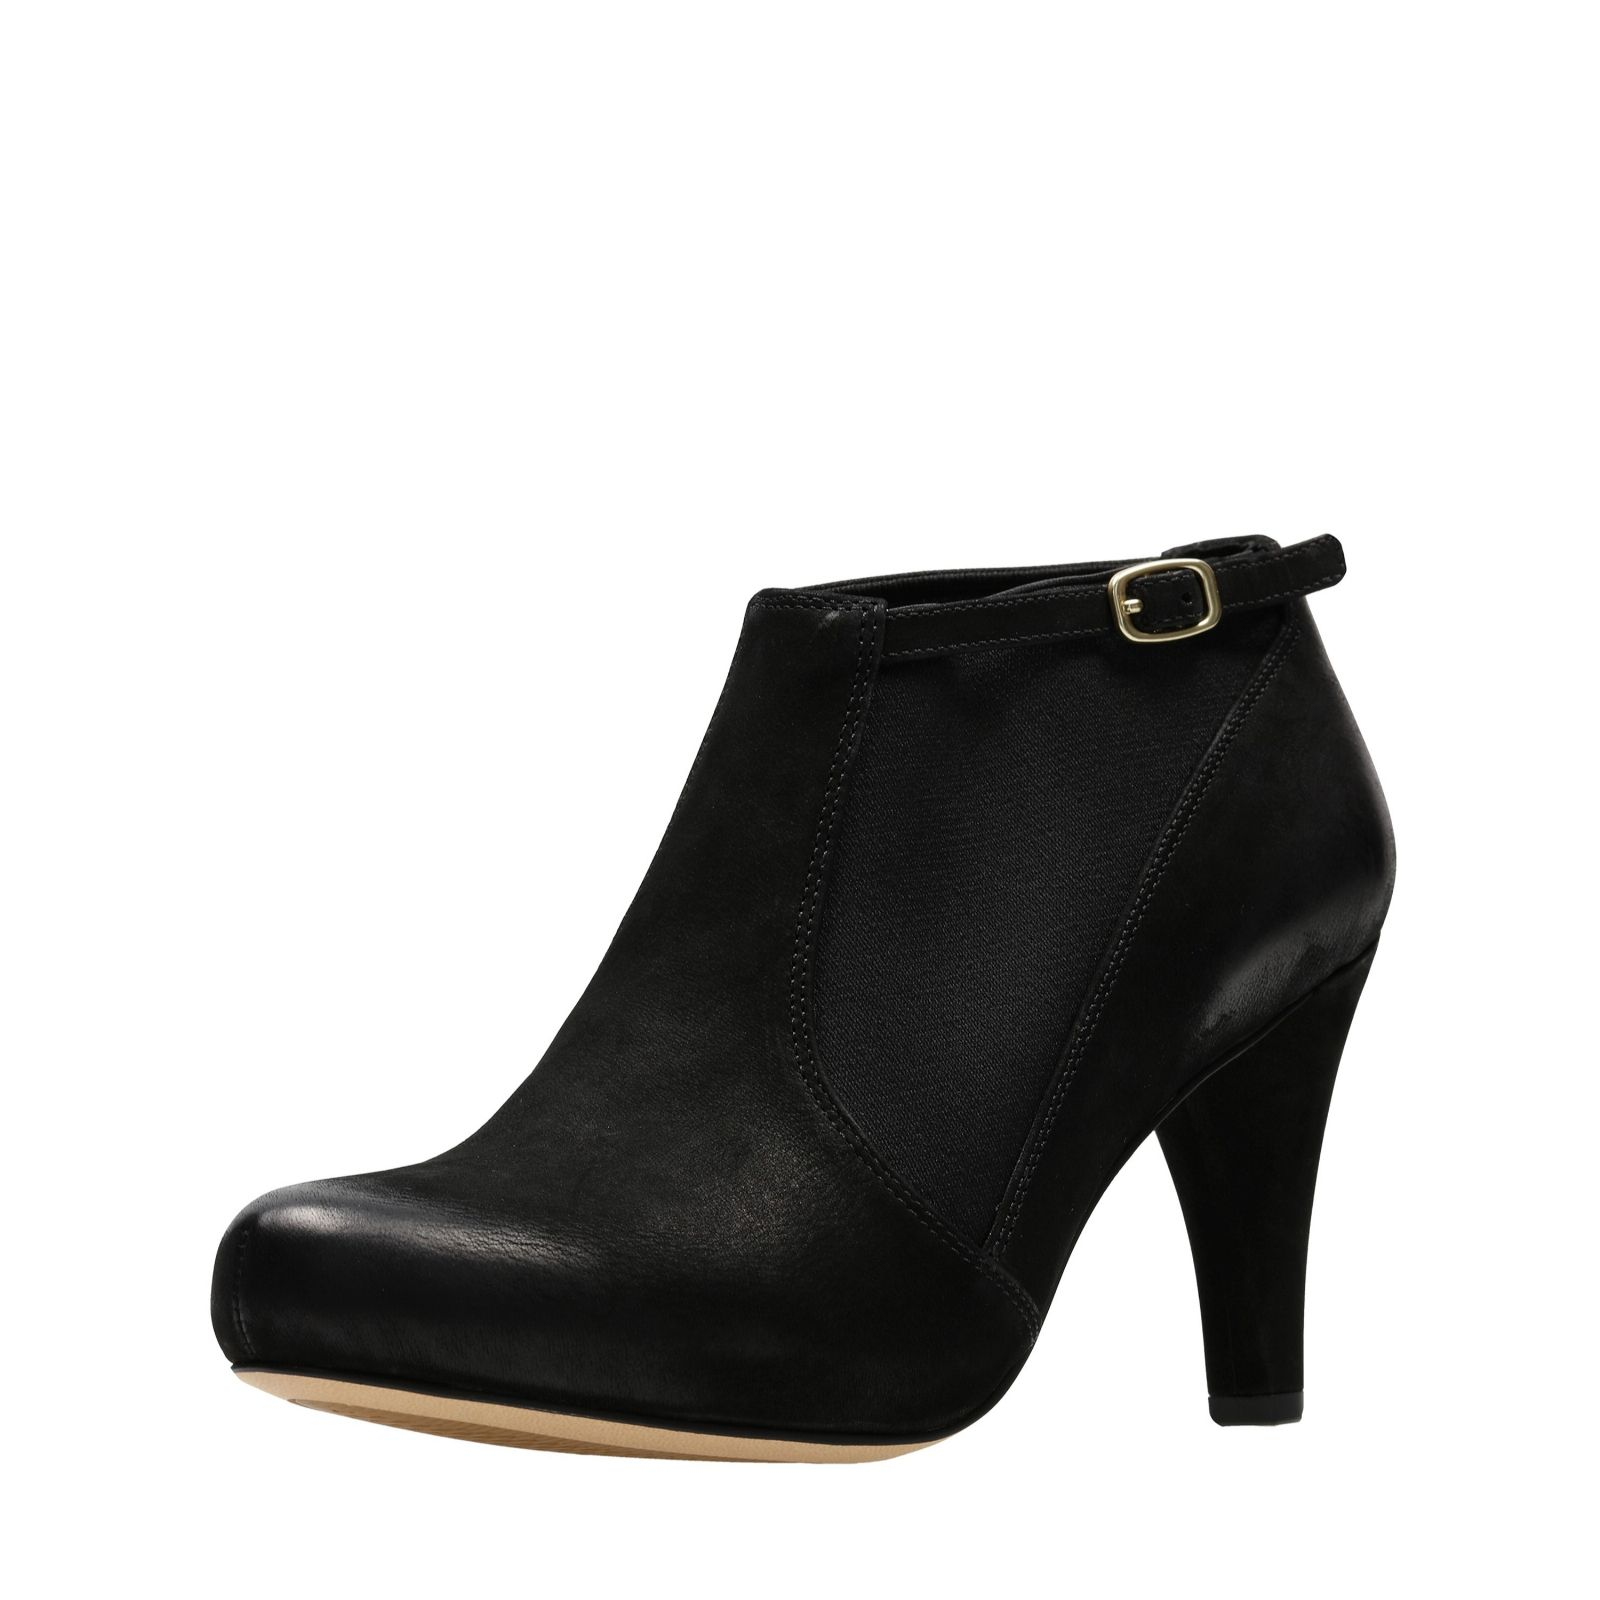 DALIA PEARL - Ankle boots - black Discount Official From China Sale Online Outlet Low Shipping Fee 100% Guaranteed For Sale GIL70l